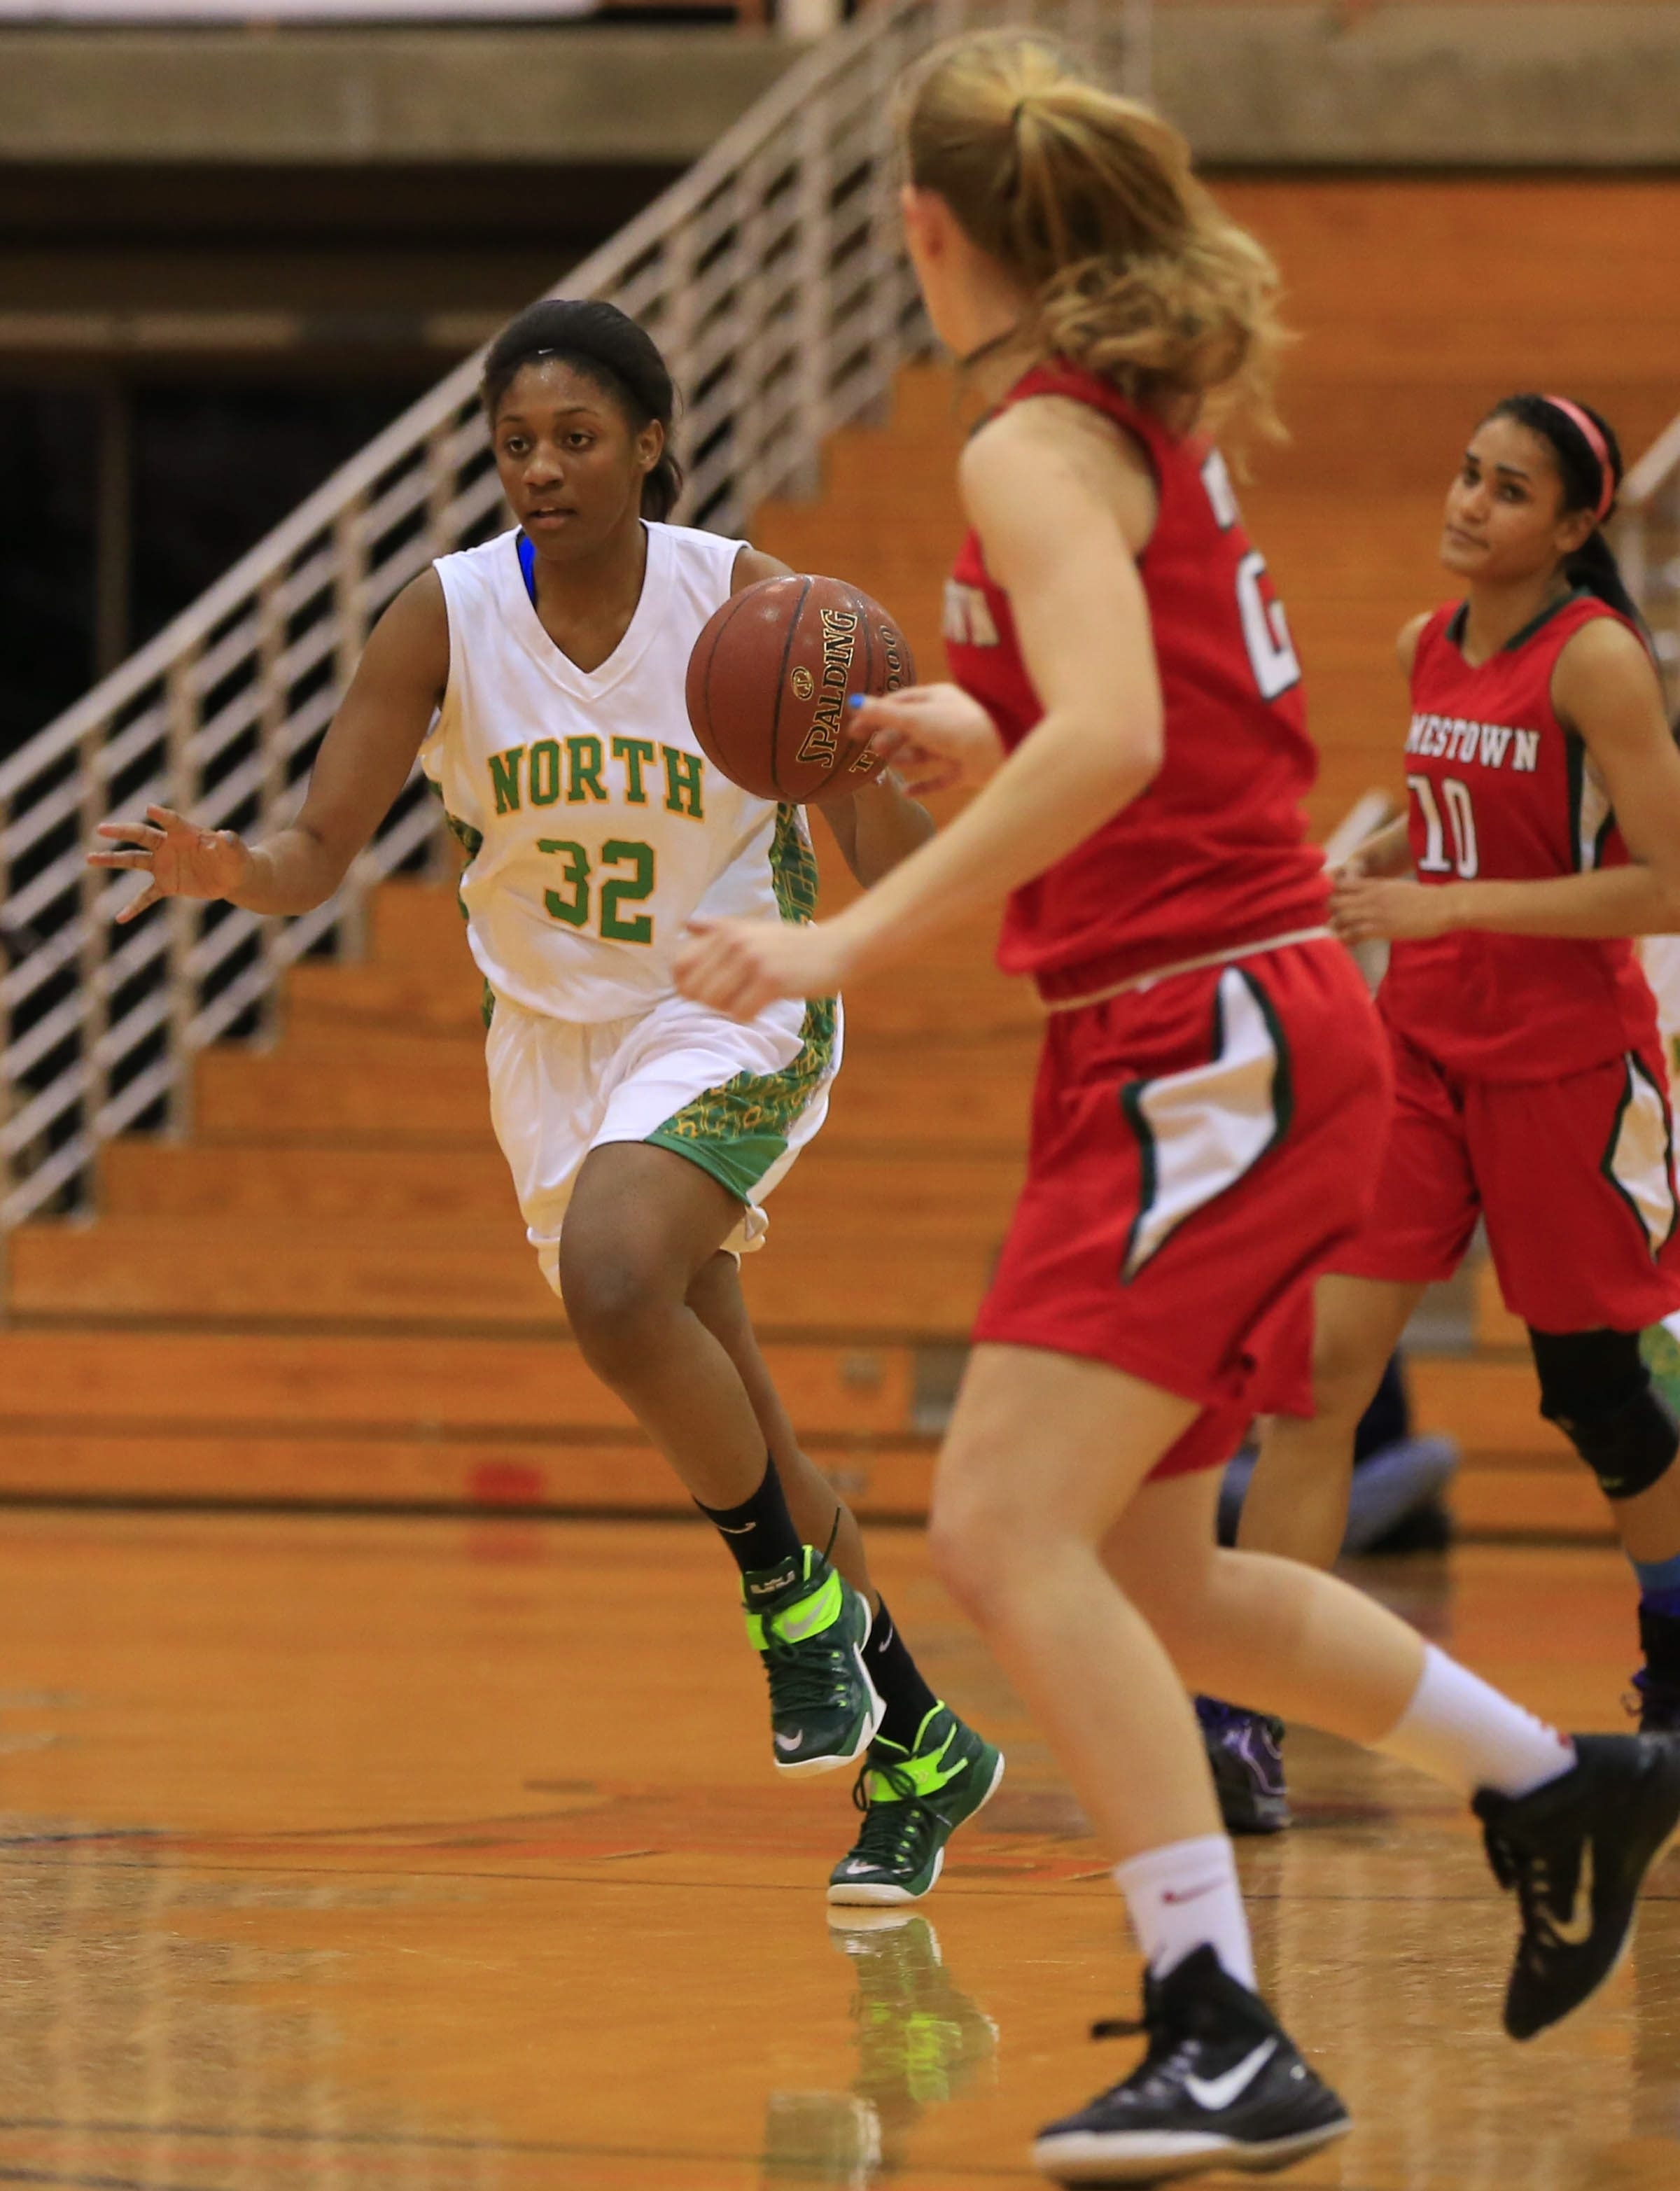 Williamsville North's Ericka Taplin will need to play well if the Spartans have hopes of winning Saturday.